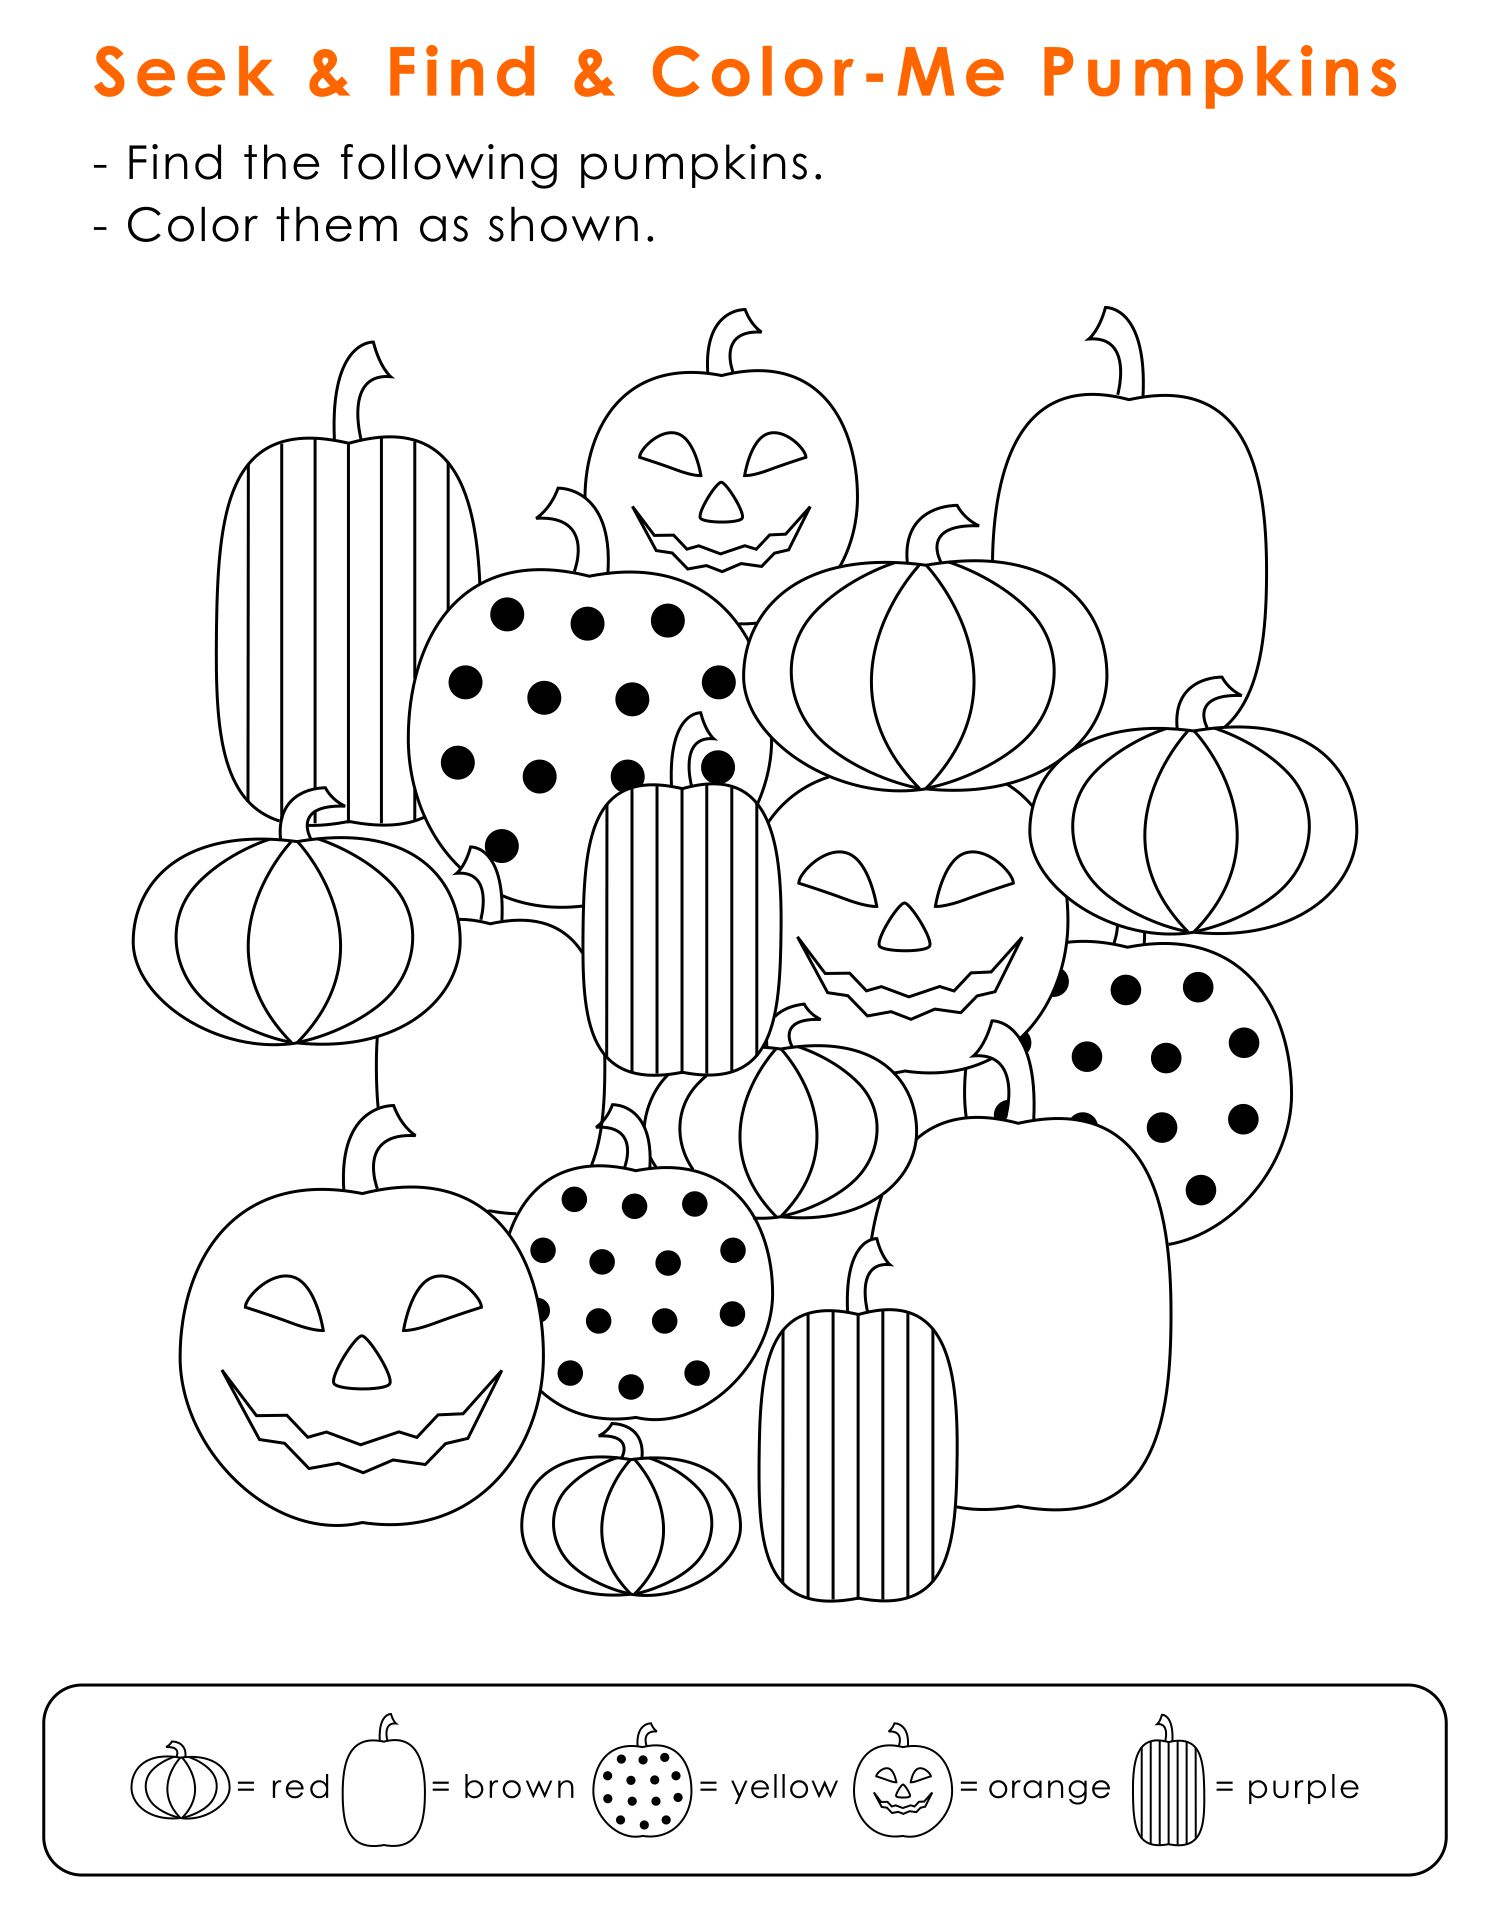 Seek And Find And Color Me Pumpkins For Halloween